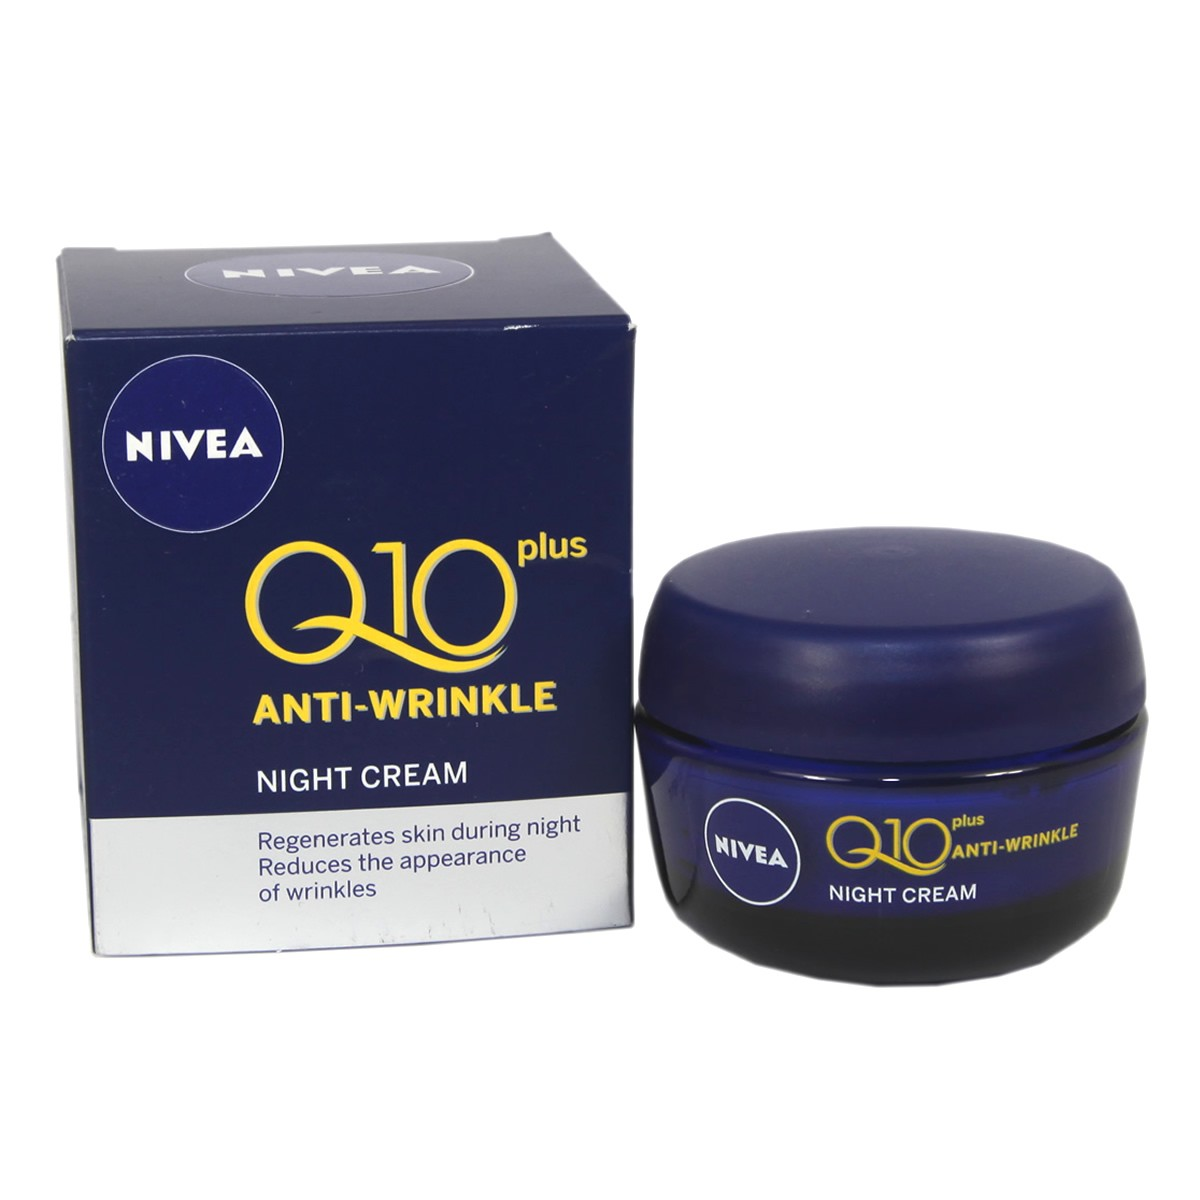 Nivea Visage Q10 Plus Anti-Wrinkle Night Cream